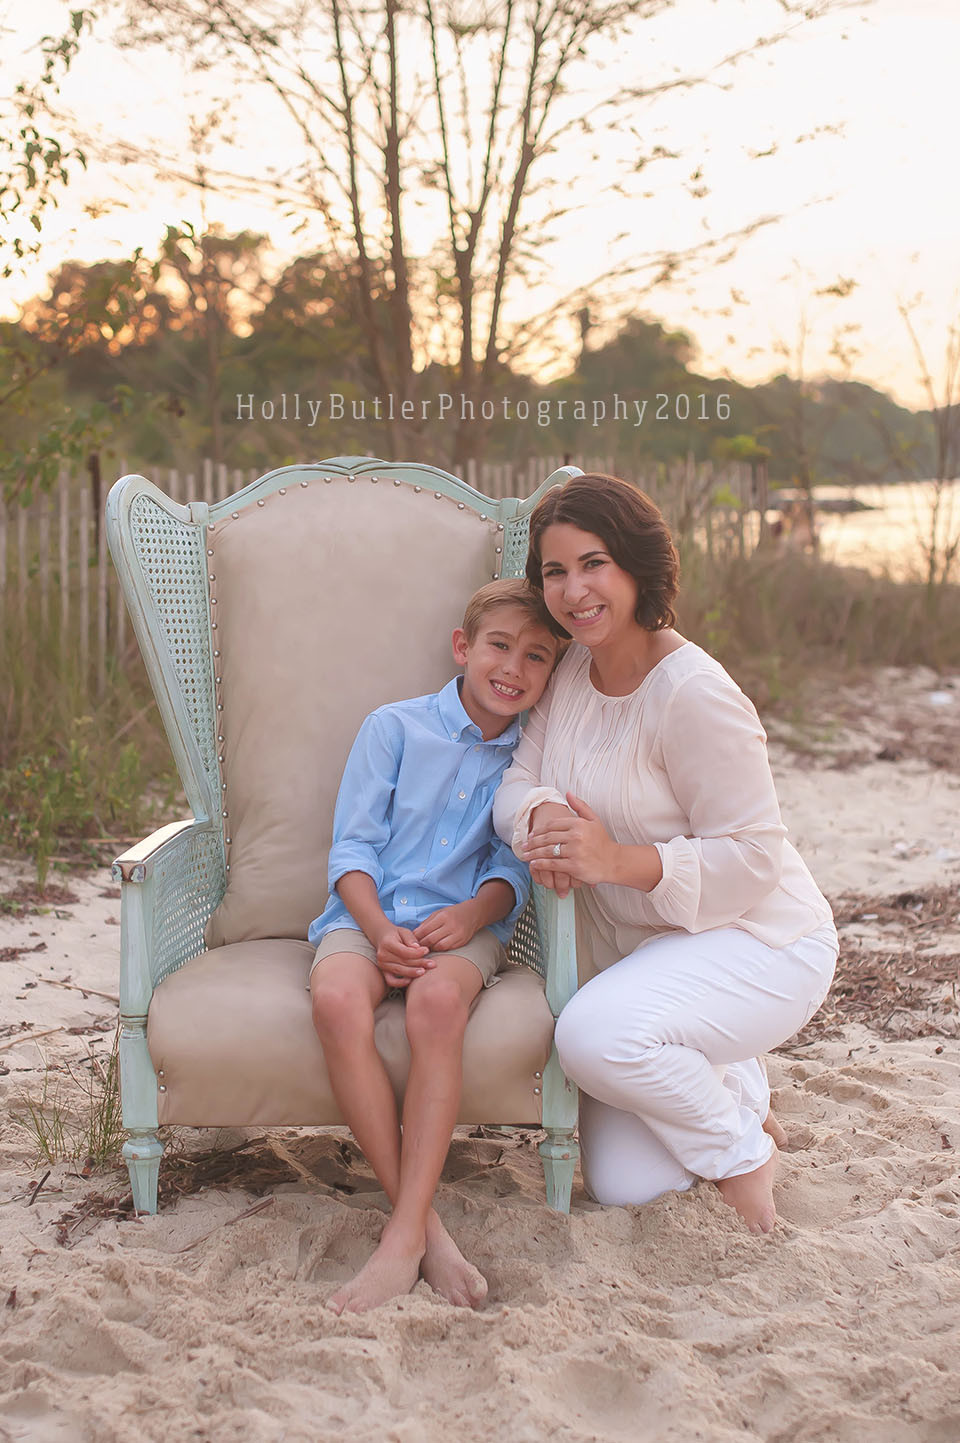 Holly Butler Photography | Family photographer